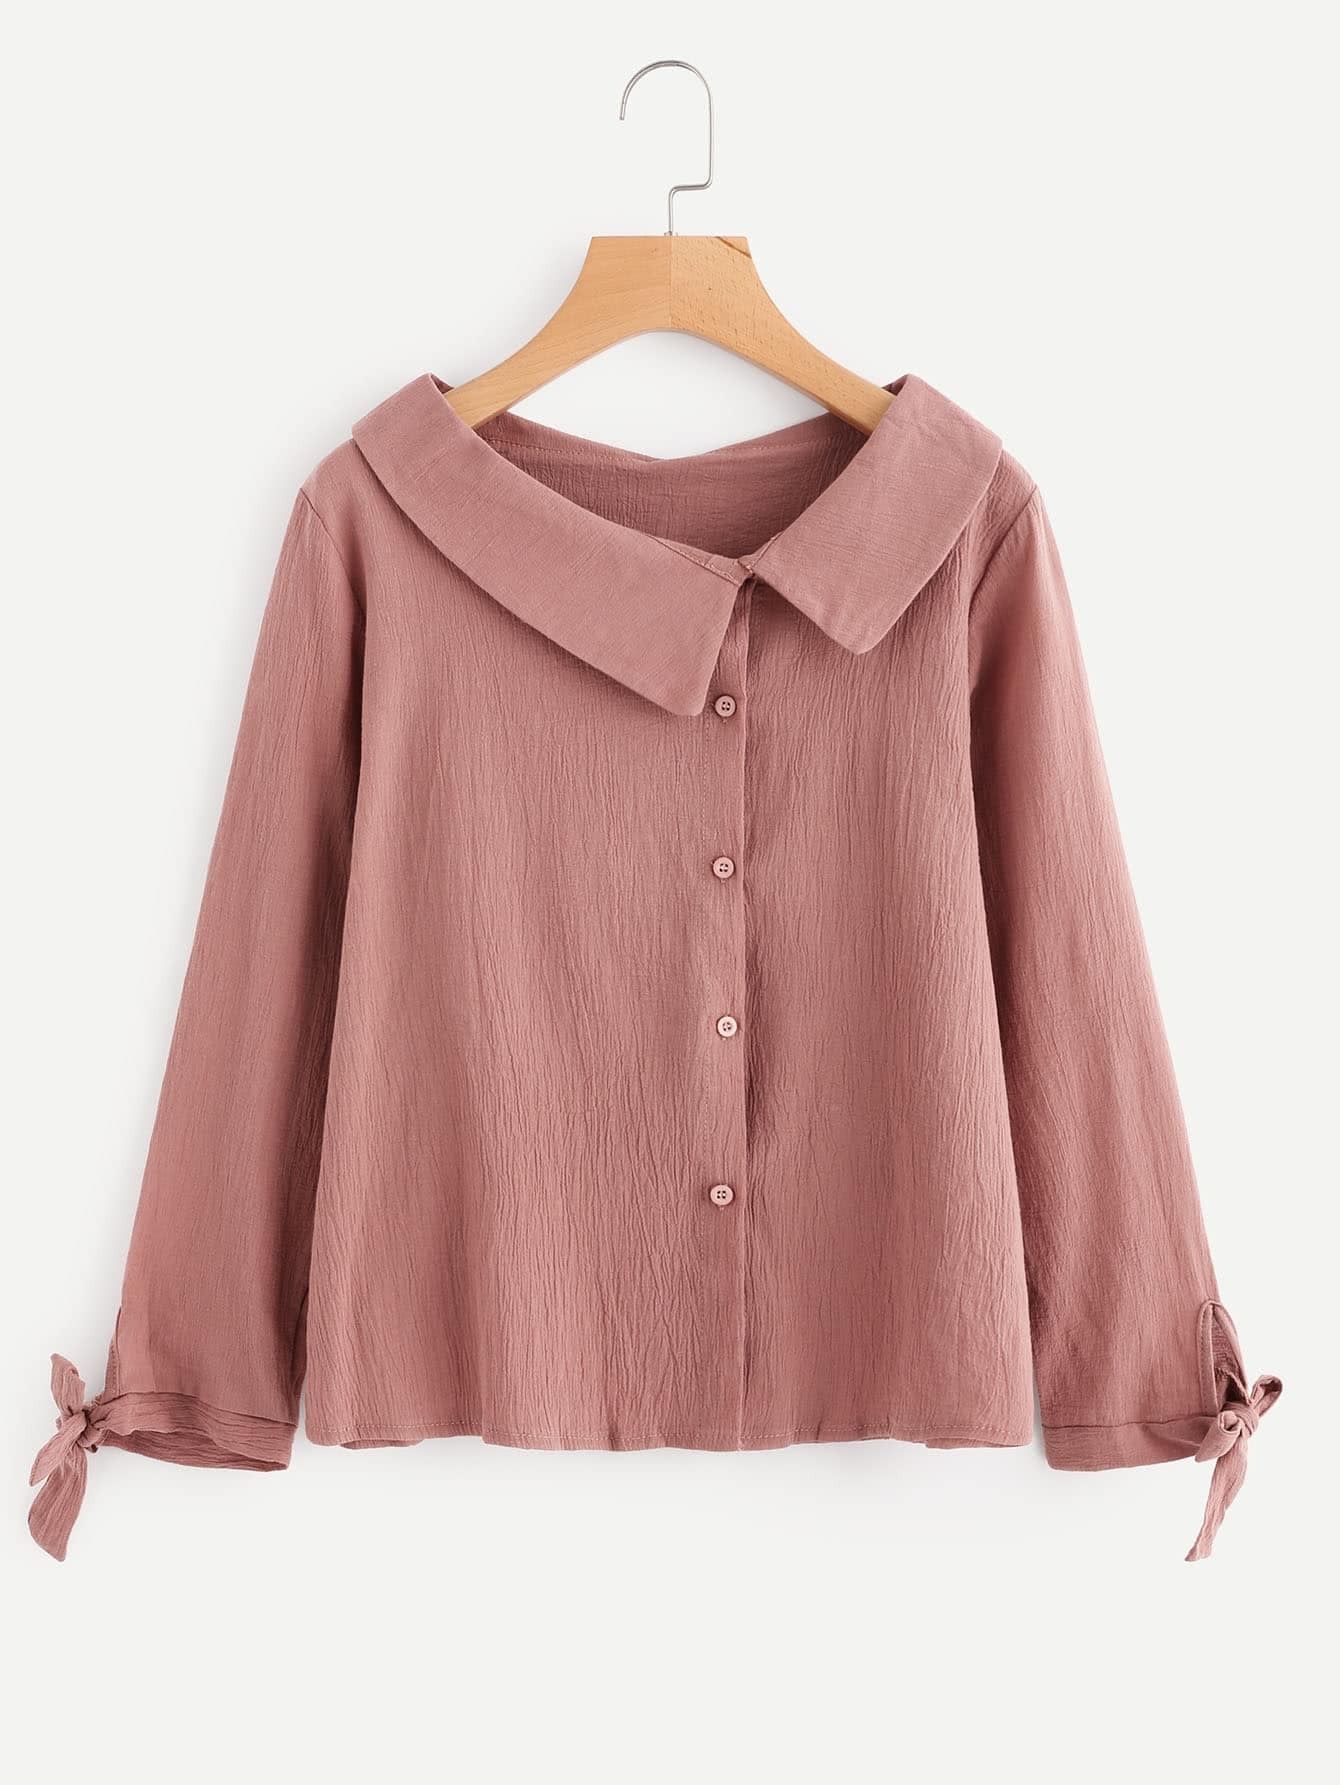 Asymmetric Collar Tie Cuff Shirt